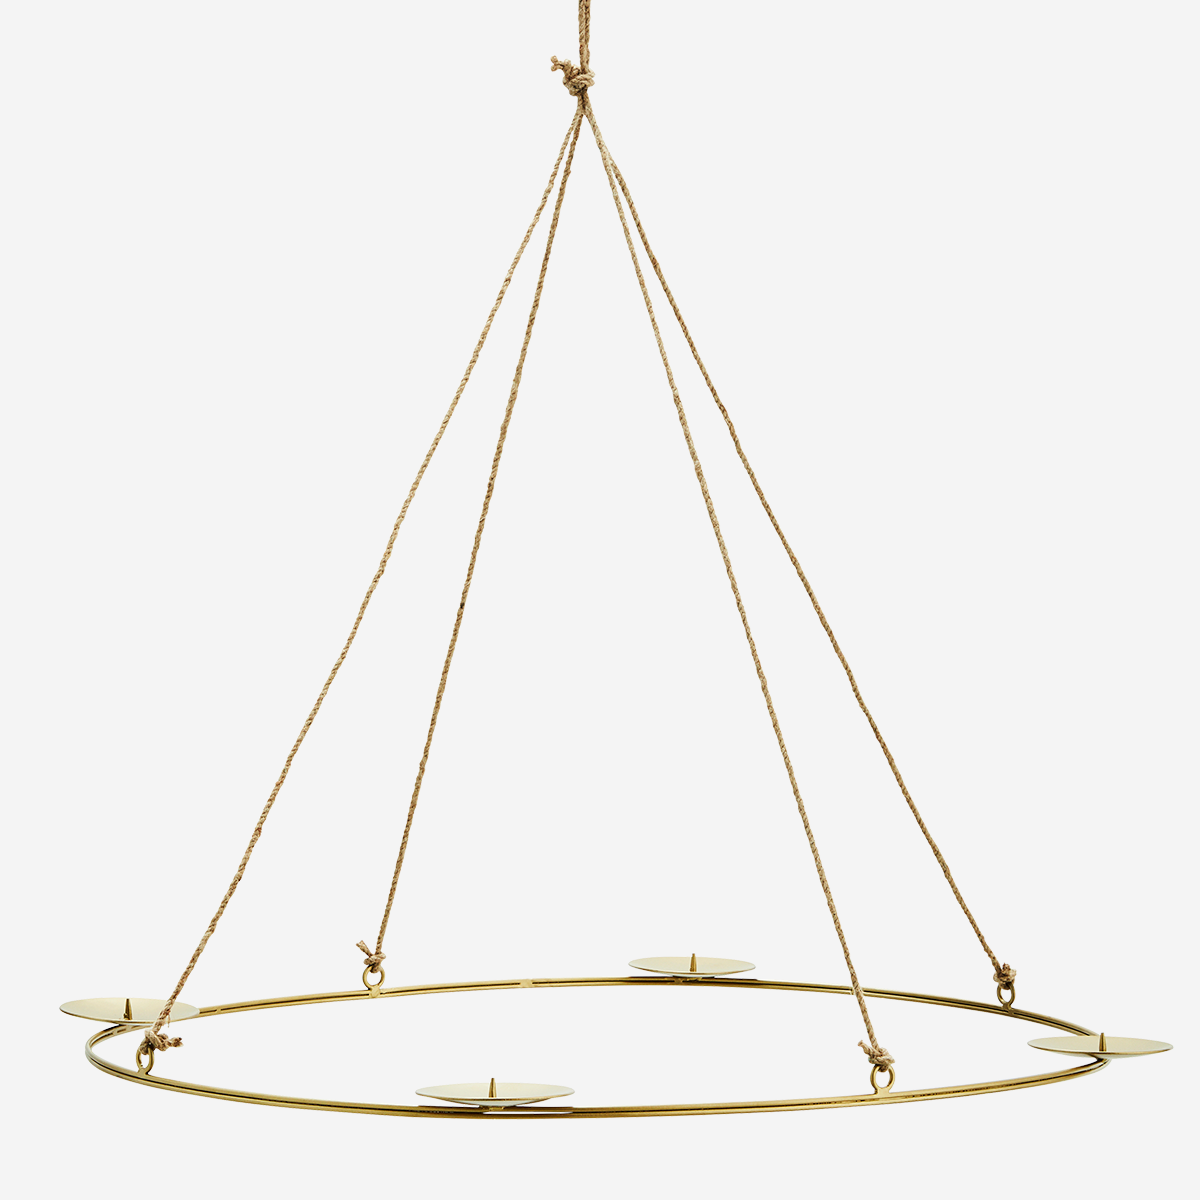 Oval hanging candle holder